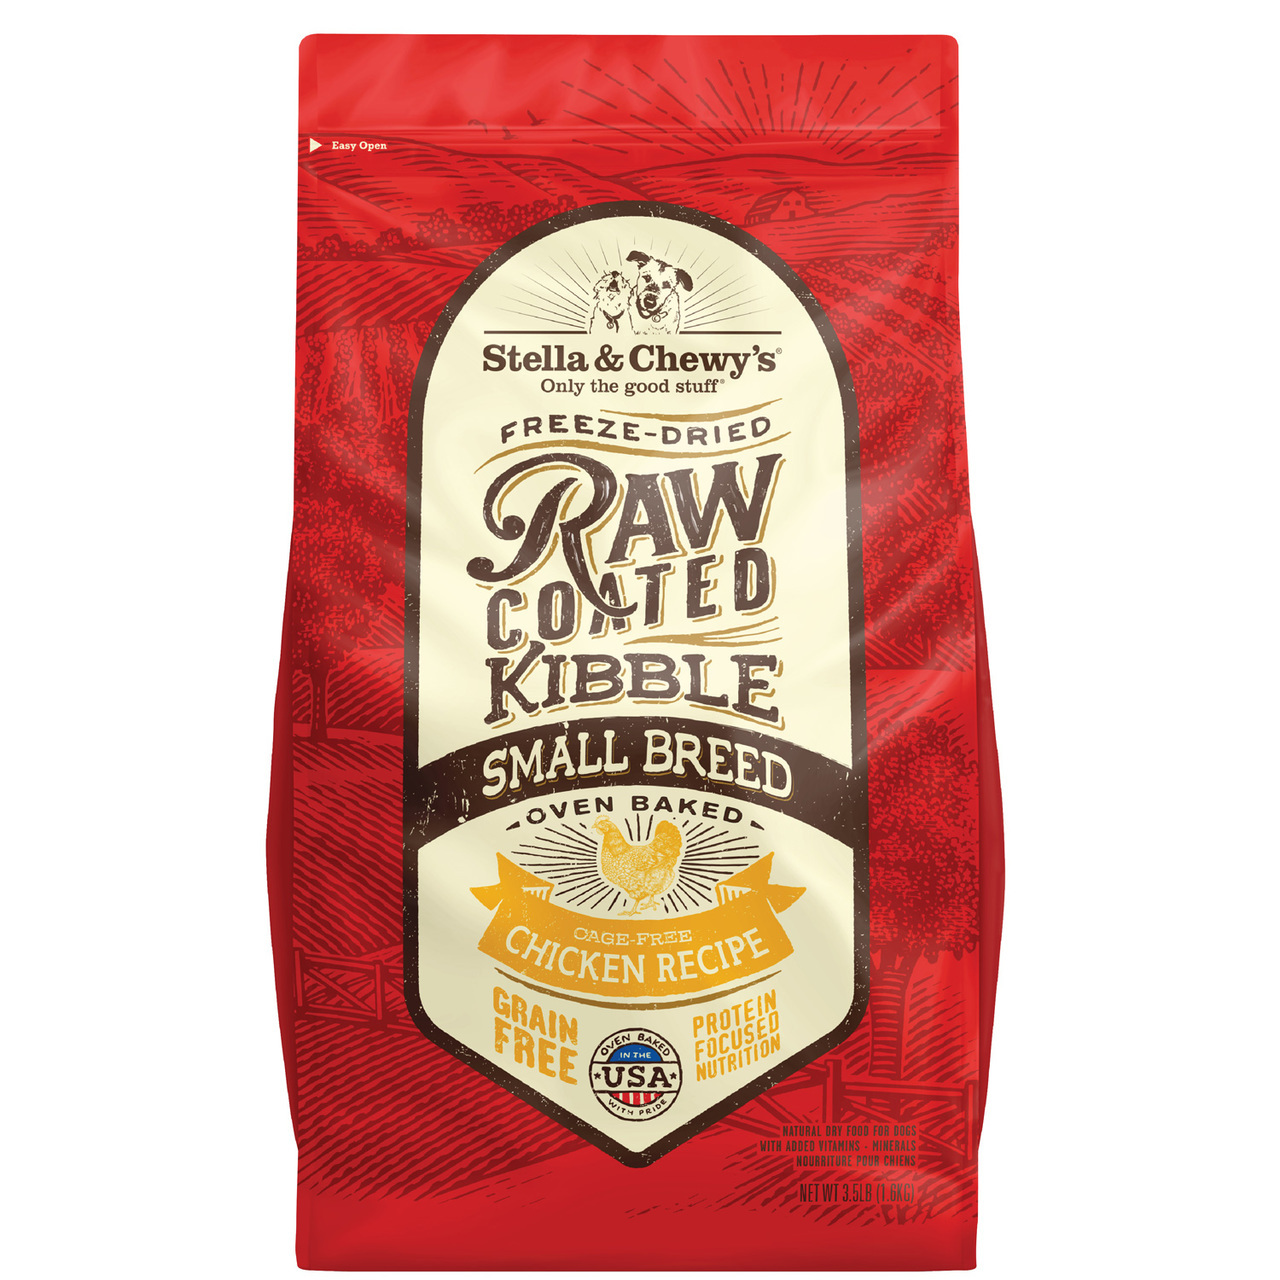 Stella & Chewy's Raw Coated Kibble Small Breed Chicken Grain-Free Dog Food, 10-lb